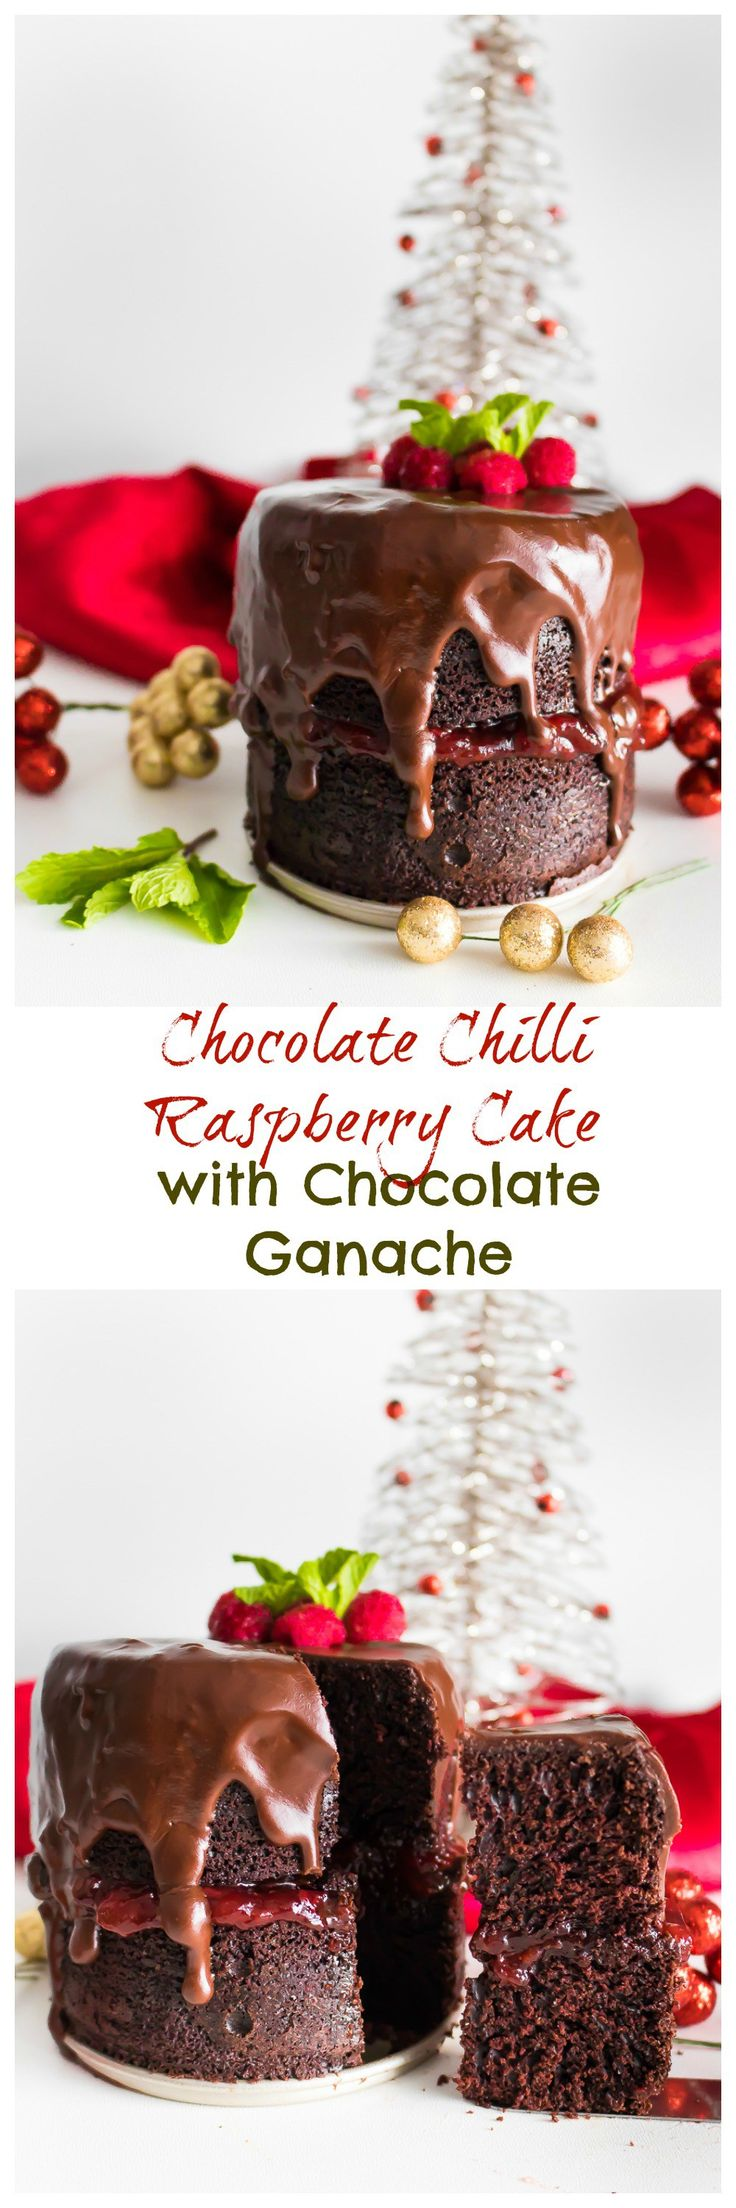 A moist and decadent chocolate cake with a spicy kick. This Chocolate Chili Raspberry Cake with chocolate ganache is dairy free and deliciously festive!